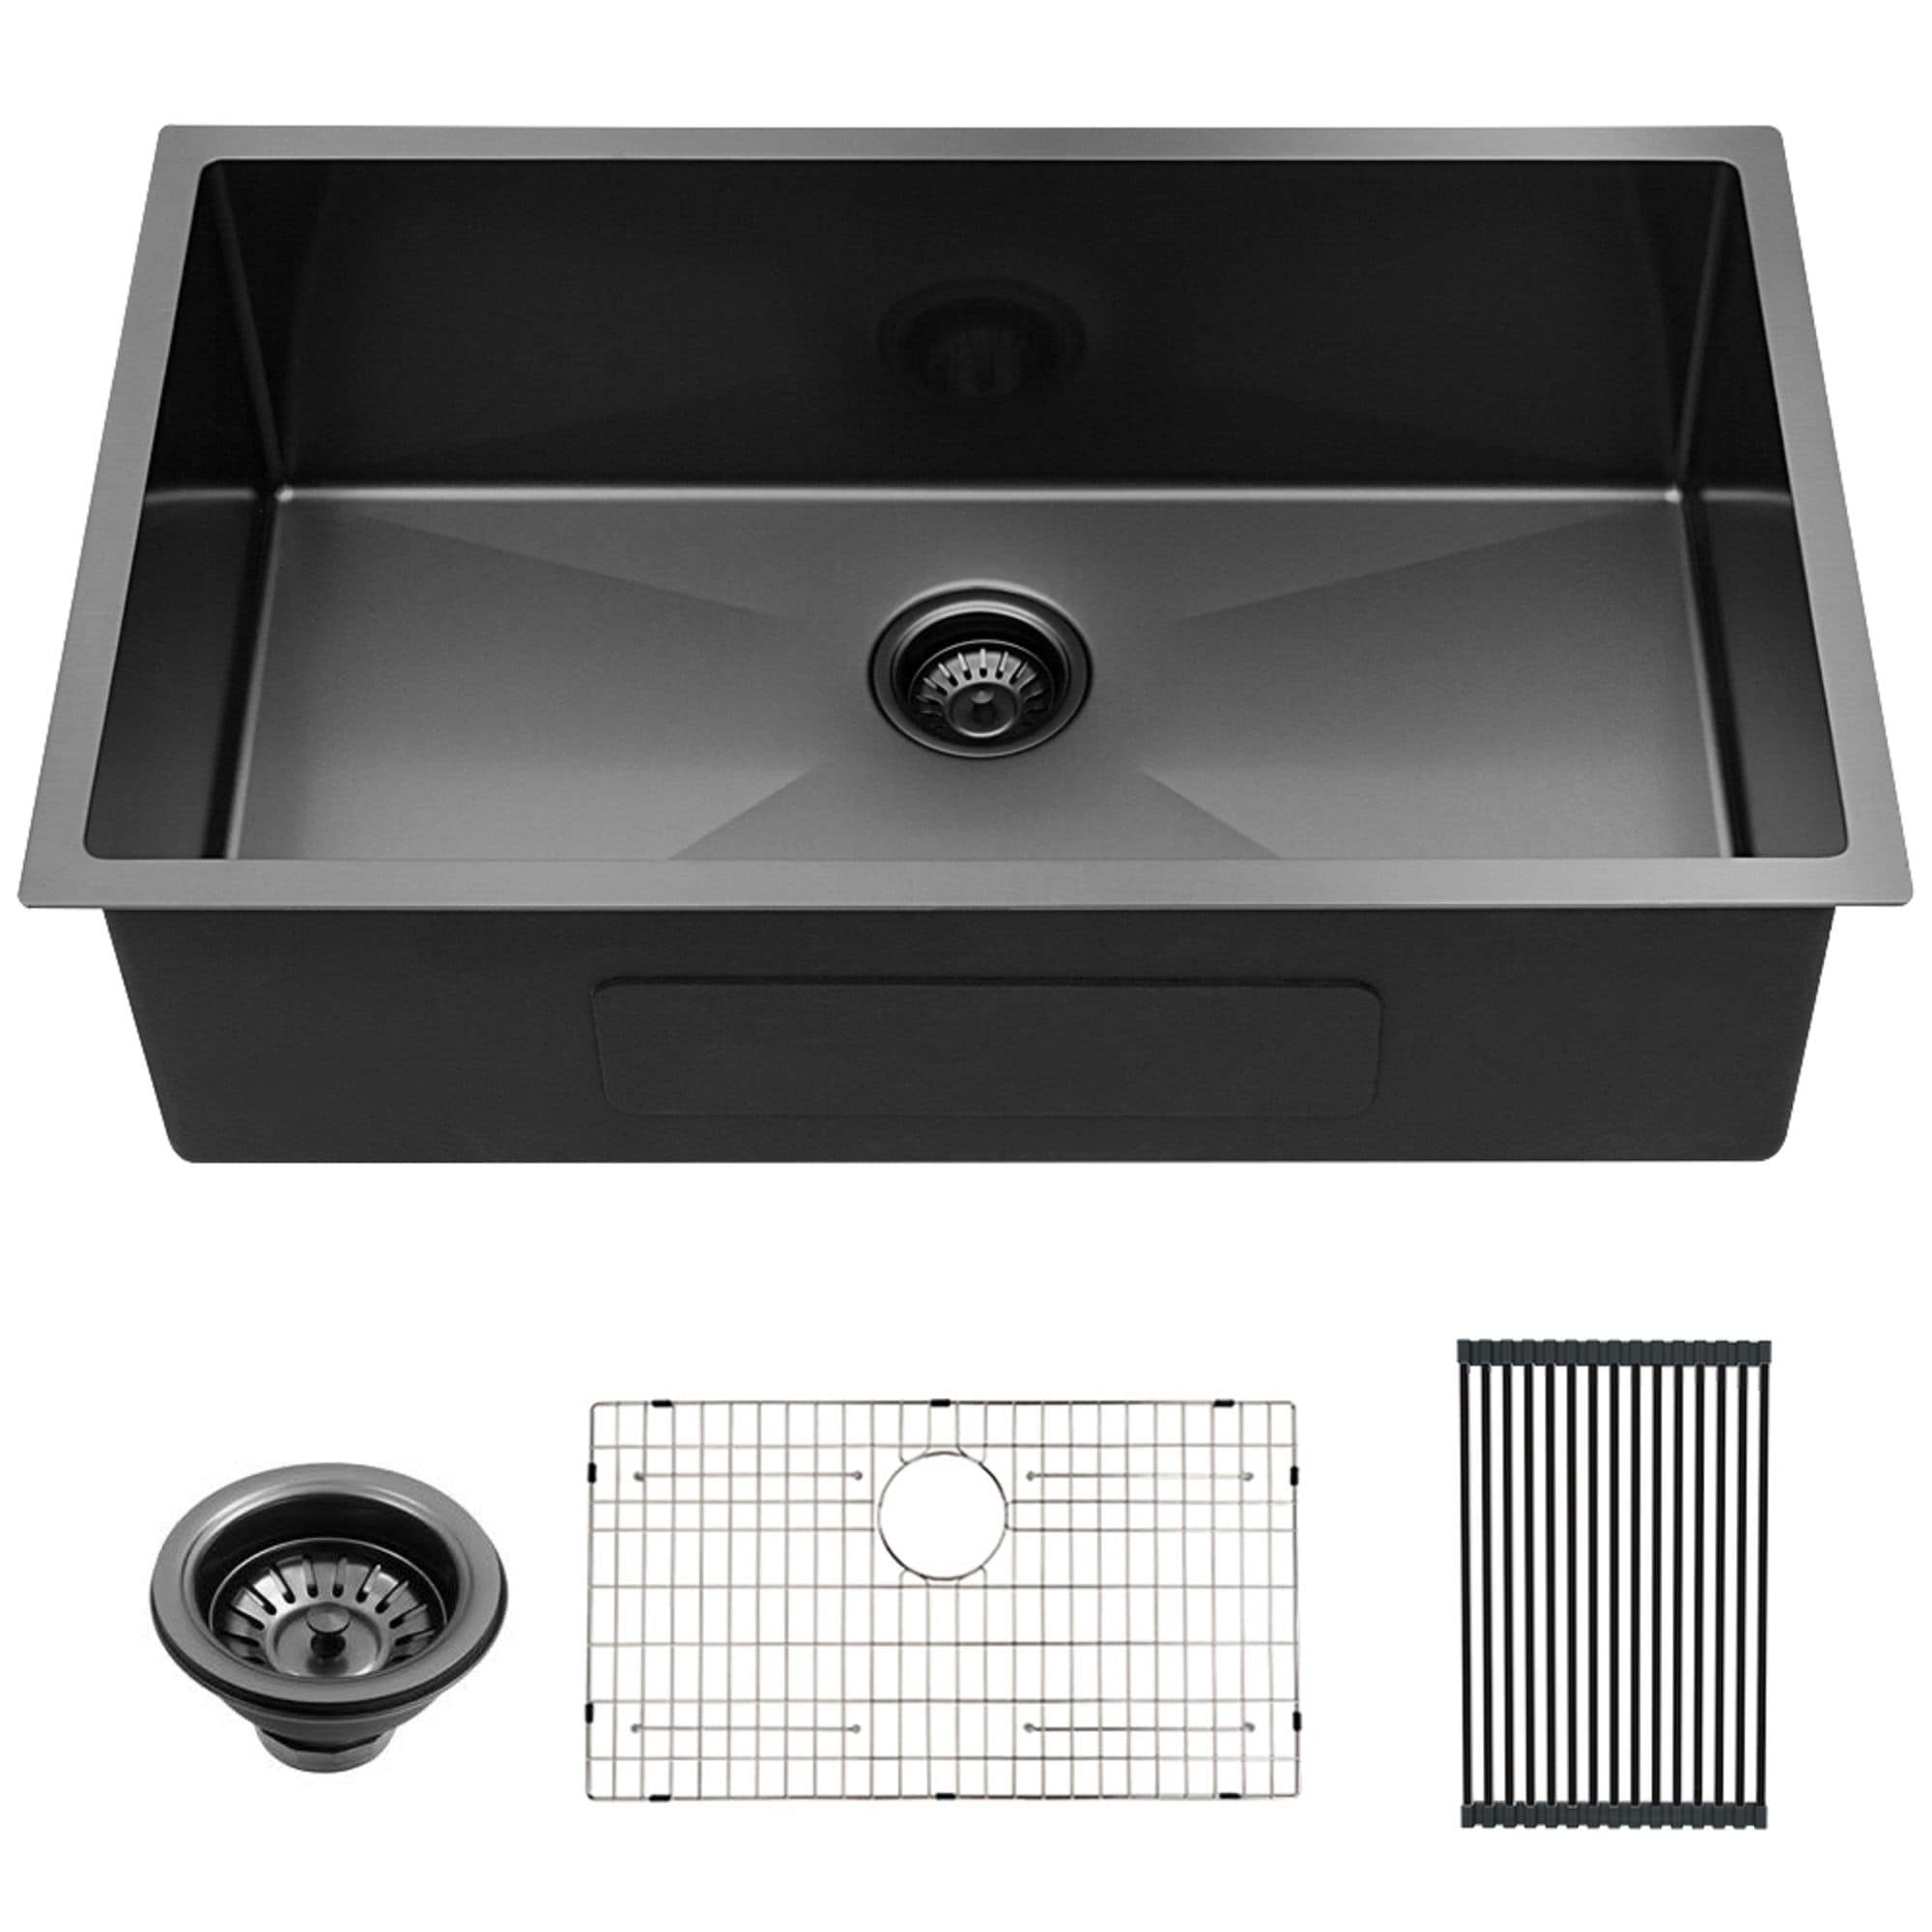 Lordear 30 Inch Kitchen Sink Undermount Gunmetal Black 16 Gauge Stainless Steel Round Corner Single Bowl Kitchen Sink Basin On Sale Overstock 31706139